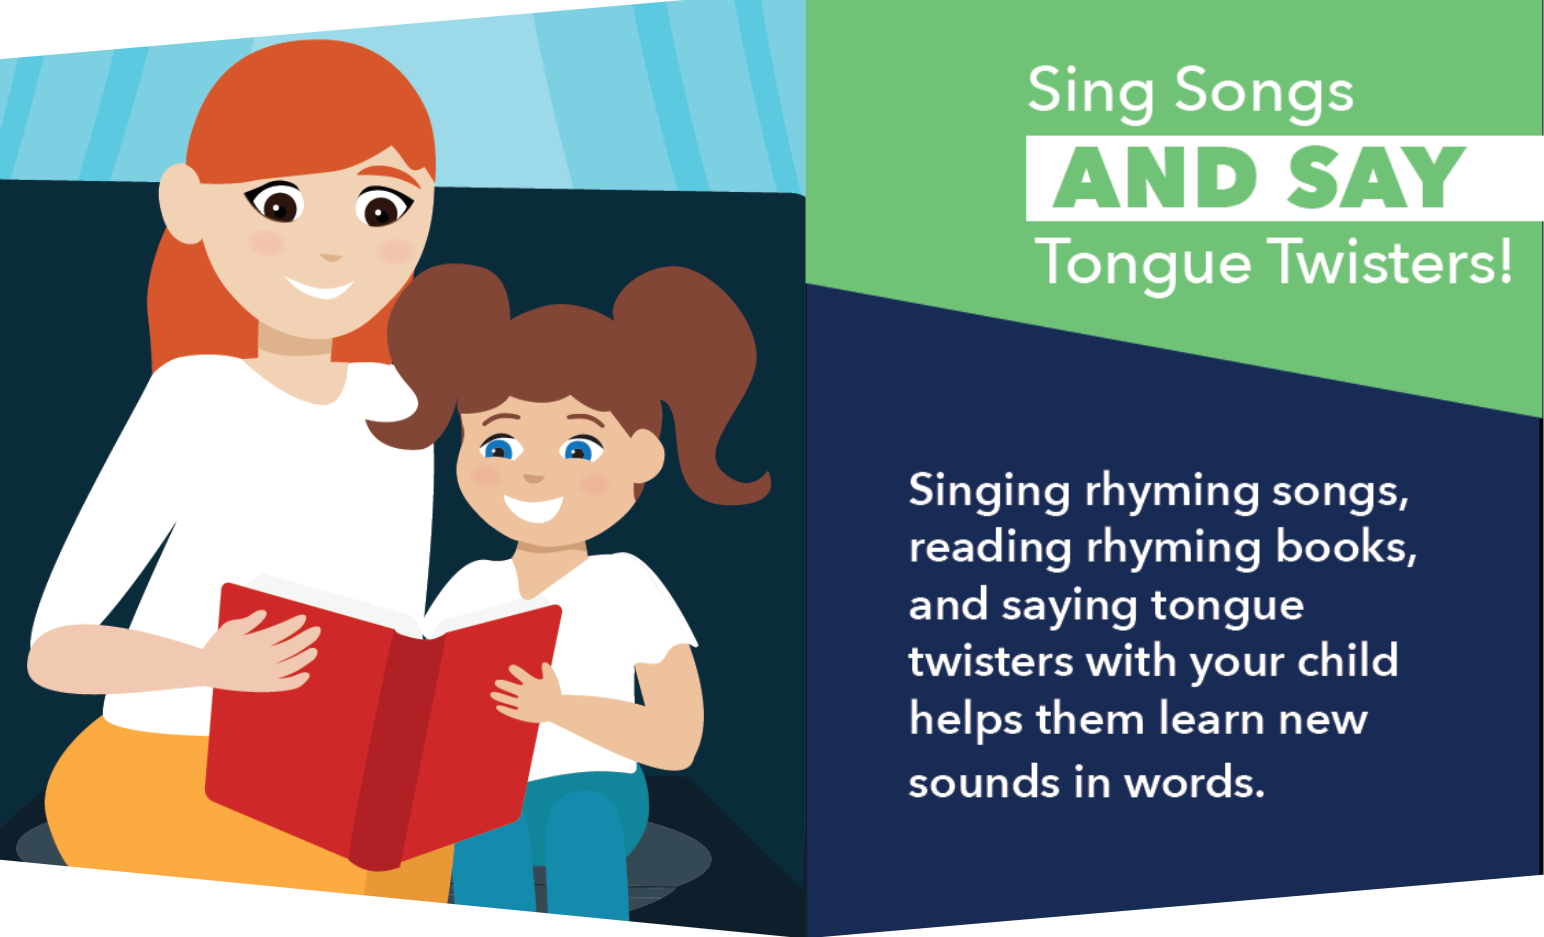 Sing songs and say tongue twisters! Singing rhyming songs, reading rhyming books, and saying tongue twisters with your child helps them learn new sounds in words.